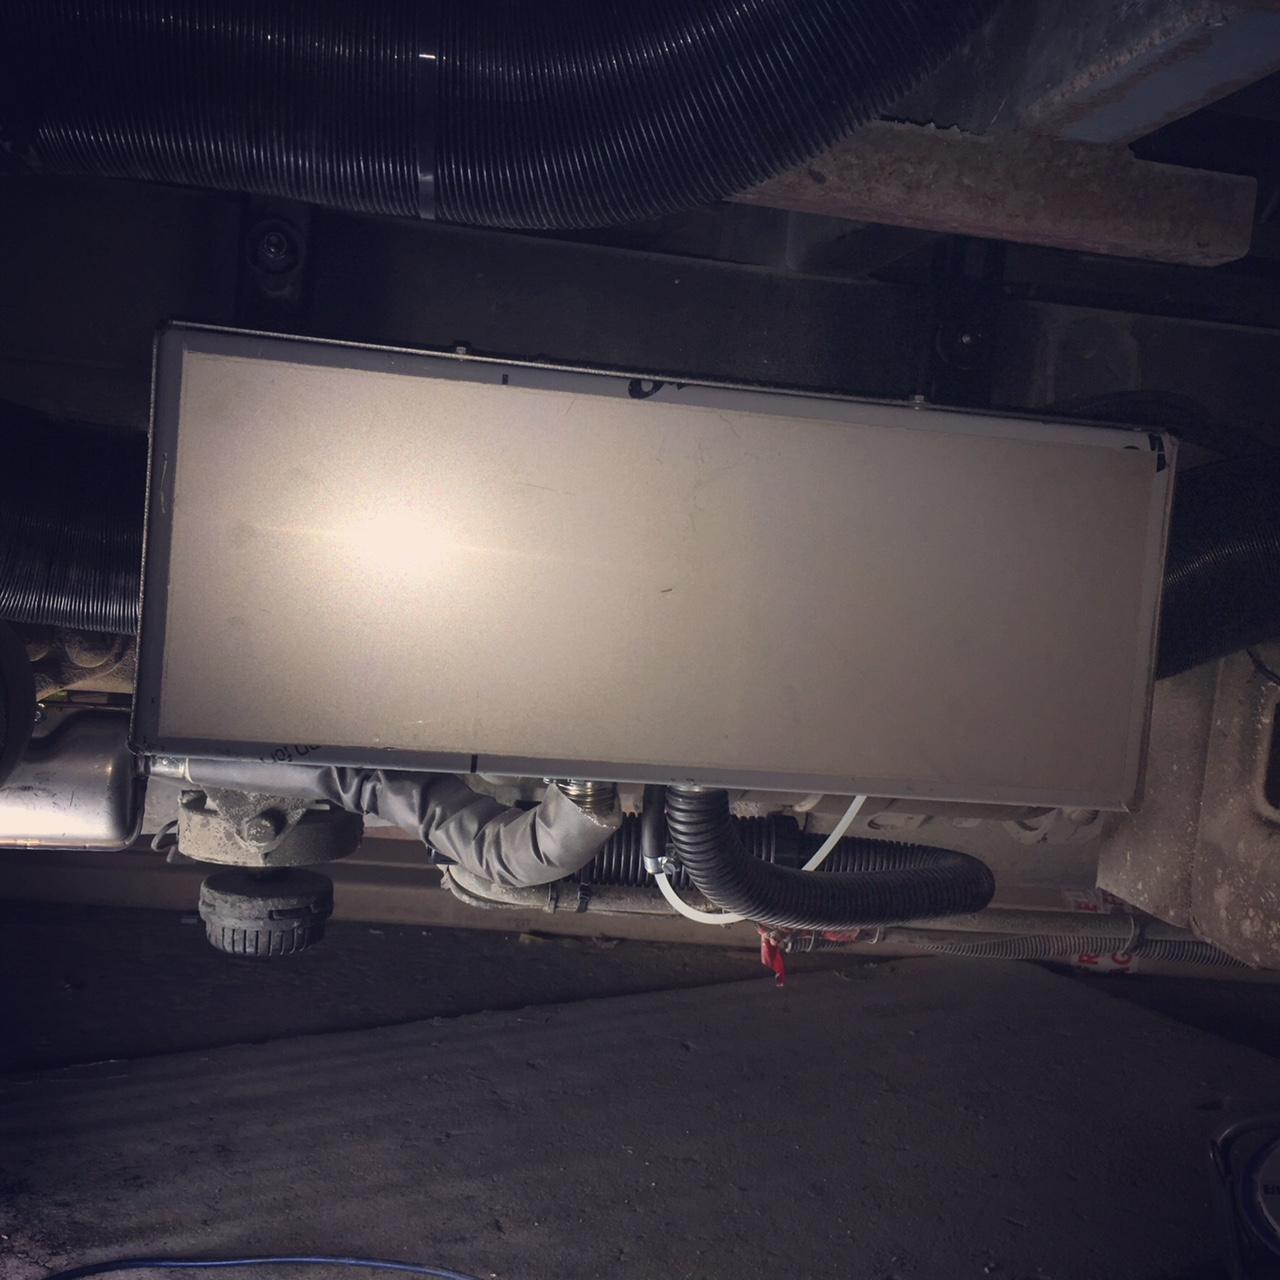 Boxed heater minibus conversion